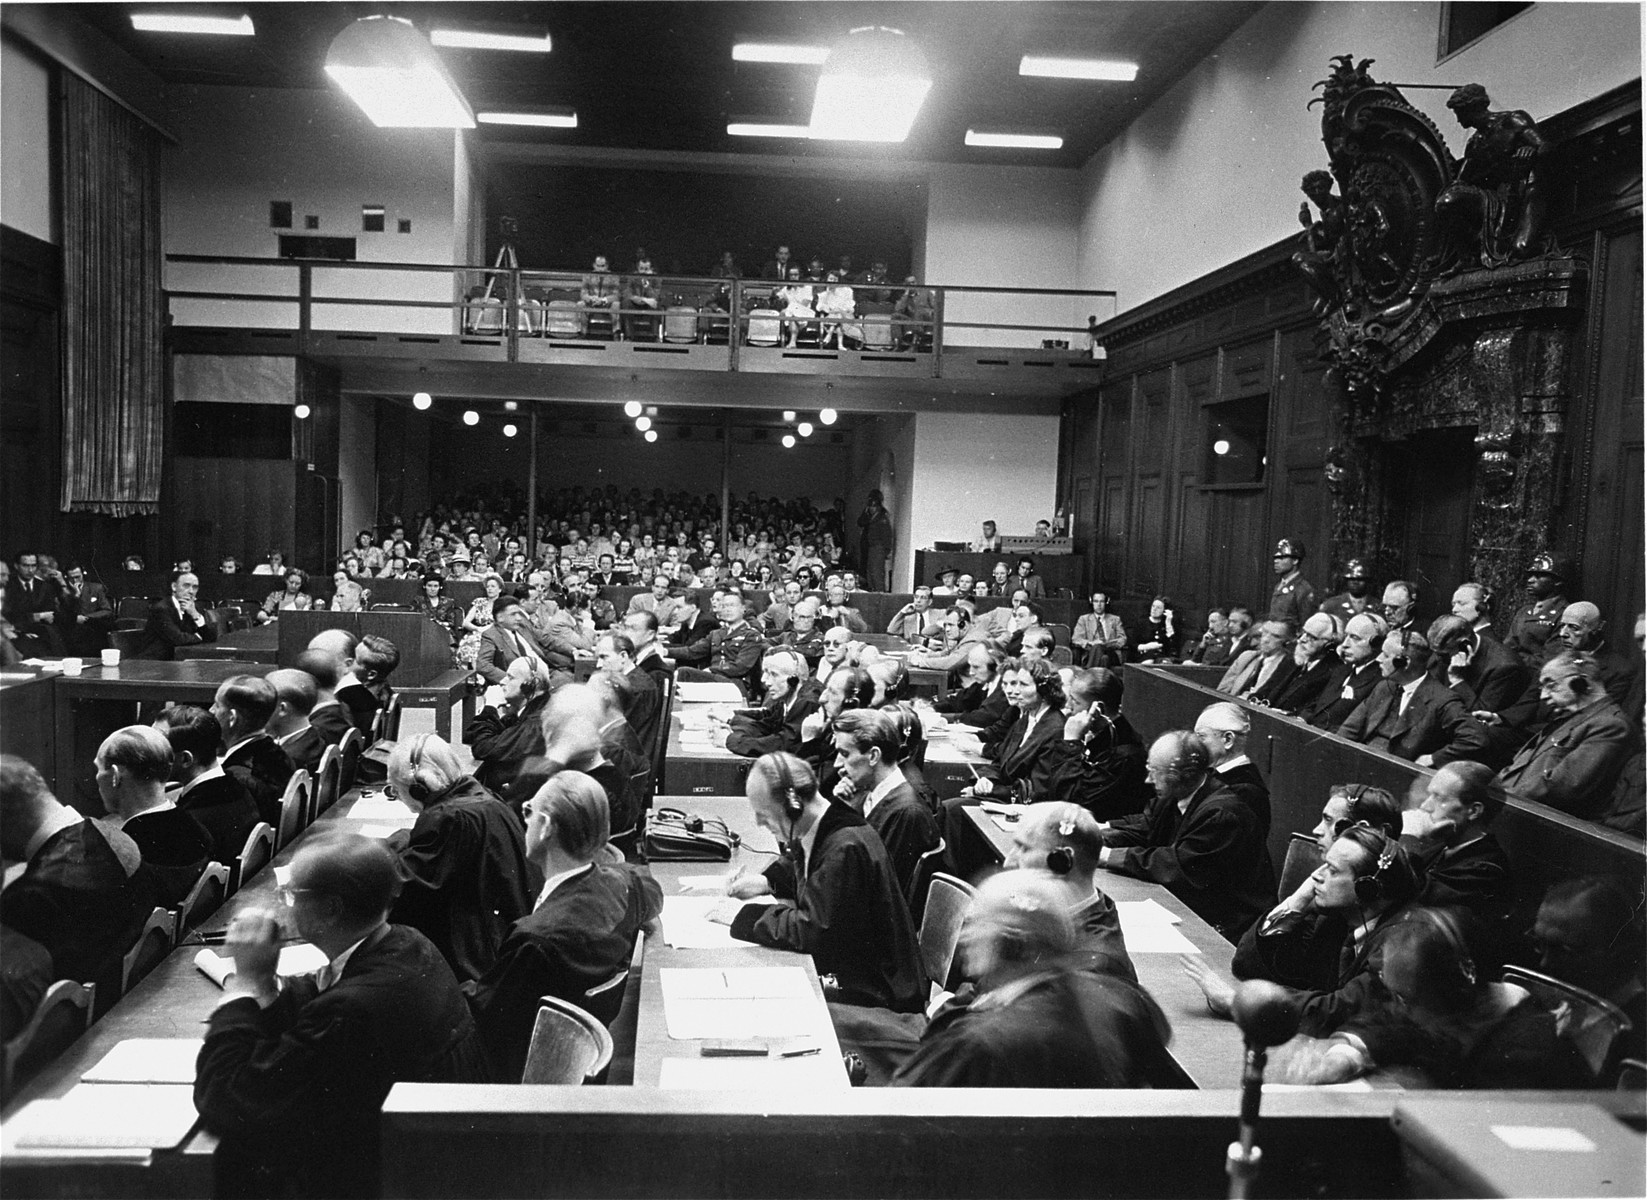 View of the courtroom as seen from the interpreters' section during the I.G. Farben Trial.    The defense lawyers are in front, and the spectators are in the back.